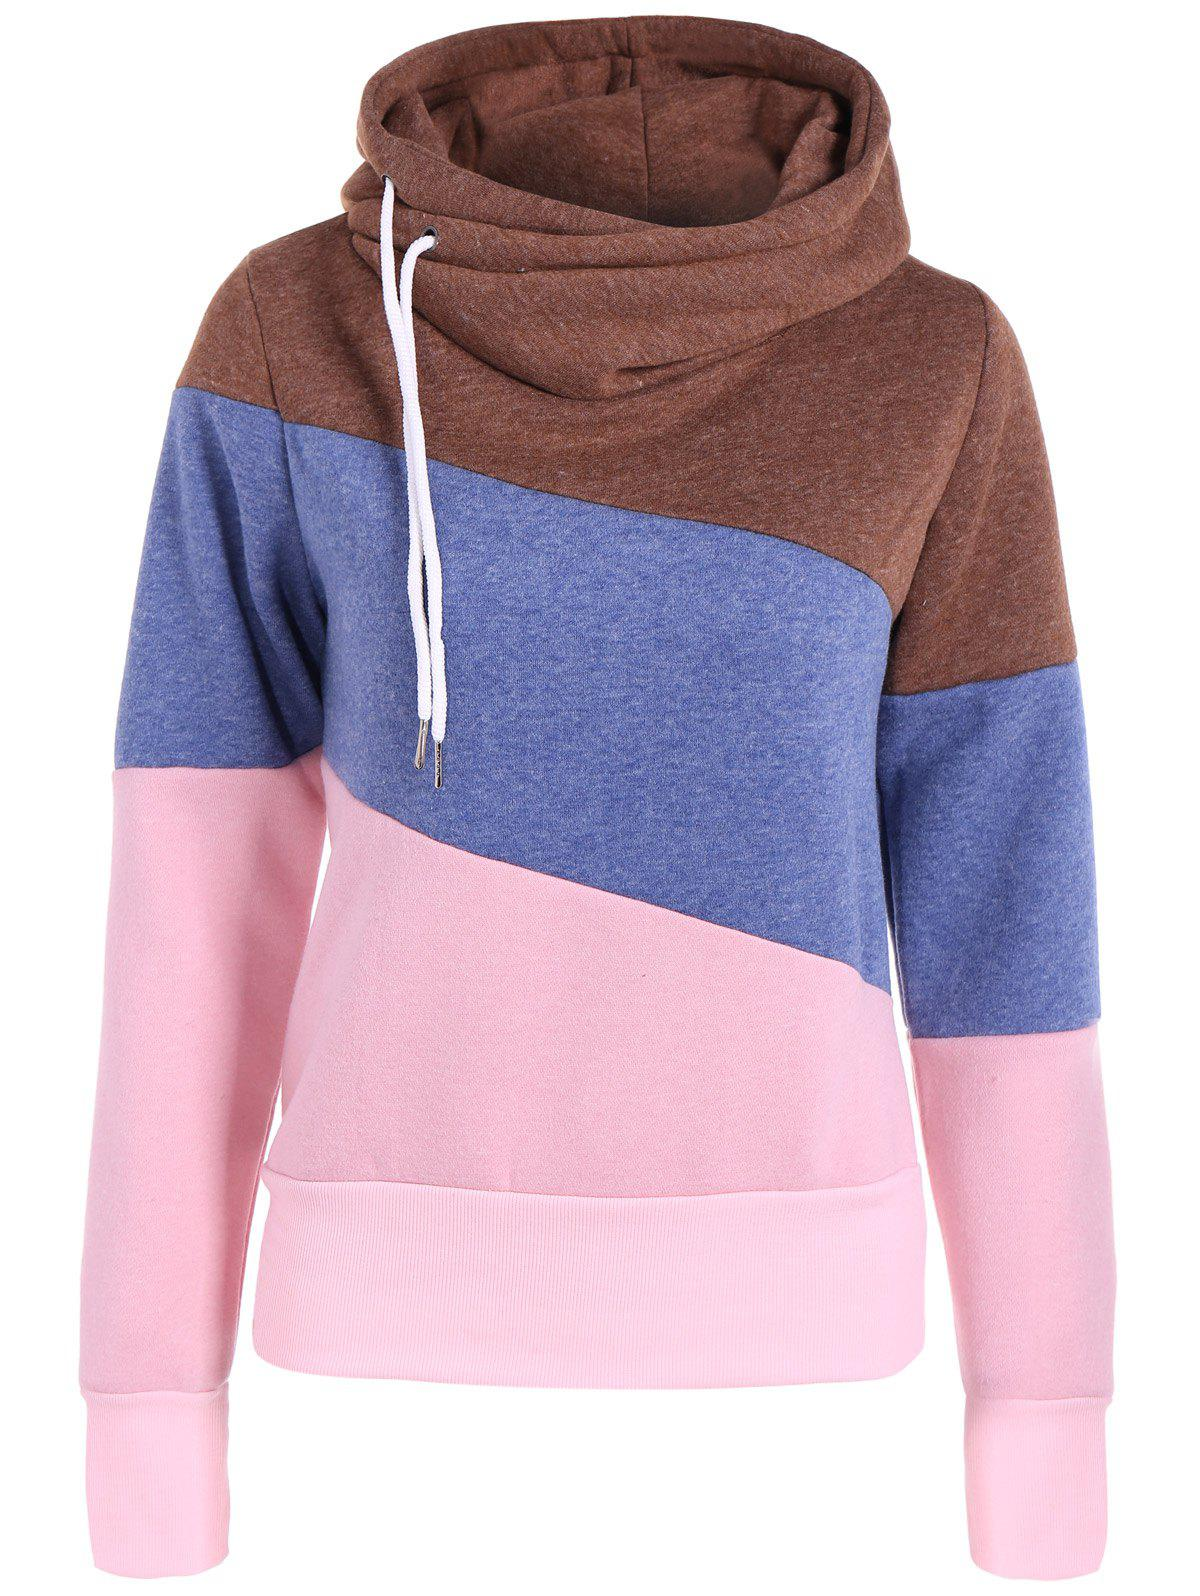 Casual Color Block Long Sleeves Hoodie For WomenWOMEN<br><br>Size: L; Color: BLUE; Material: Cotton Blend; Shirt Length: Regular; Sleeve Length: Full; Style: Casual; Pattern Style: Patchwork; Weight: 0.520kg; Package Contents: 1 x Hoodie;